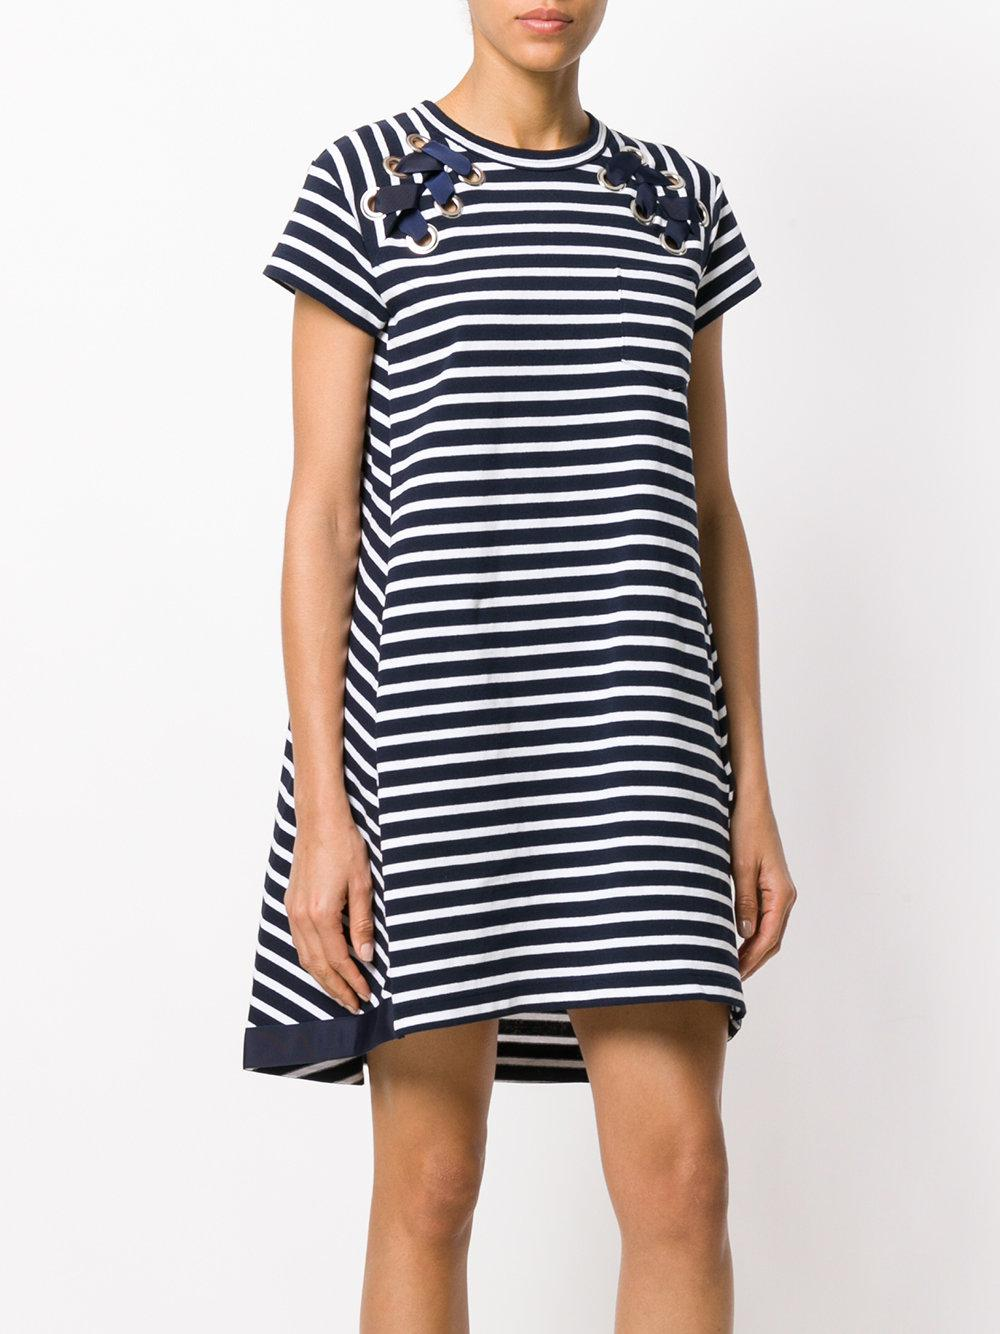 In China lace-up detail marine dress - Blue sacai Clearance Shop Offer UTr1fHemv